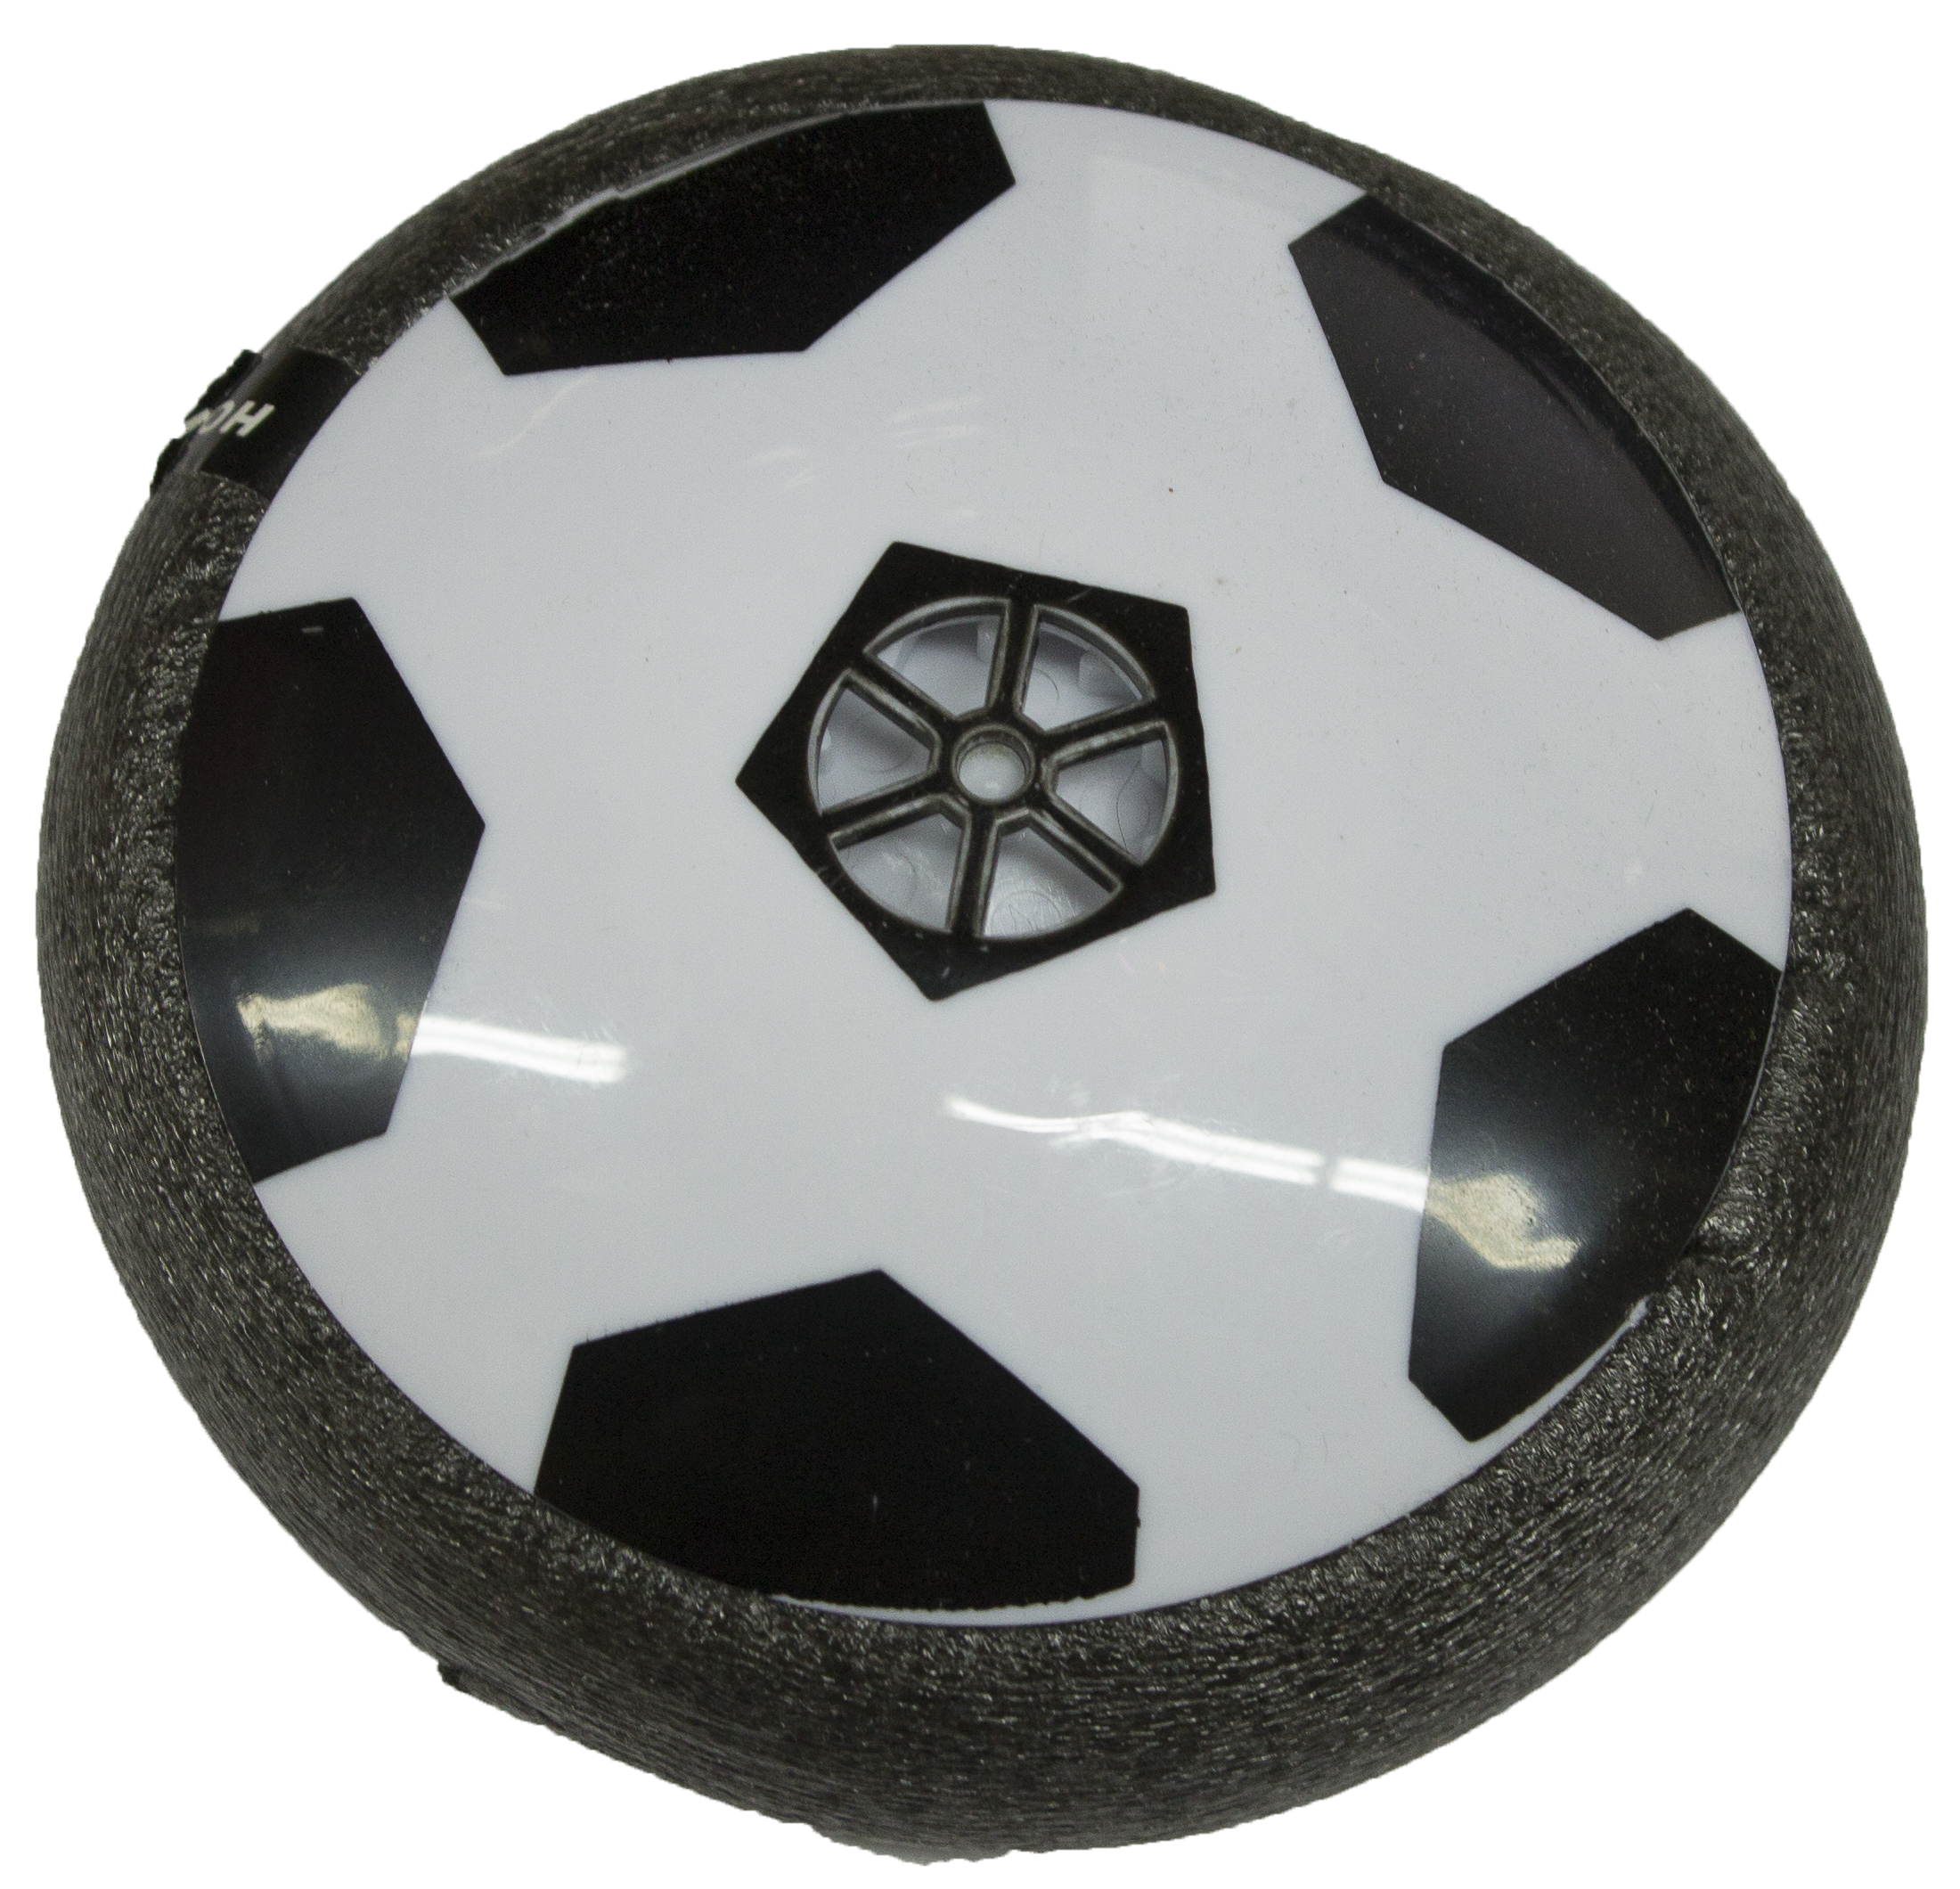 Super Fun Hover Toy Hover Soccer Ball (Great for tabletop  floor!) by nv-840